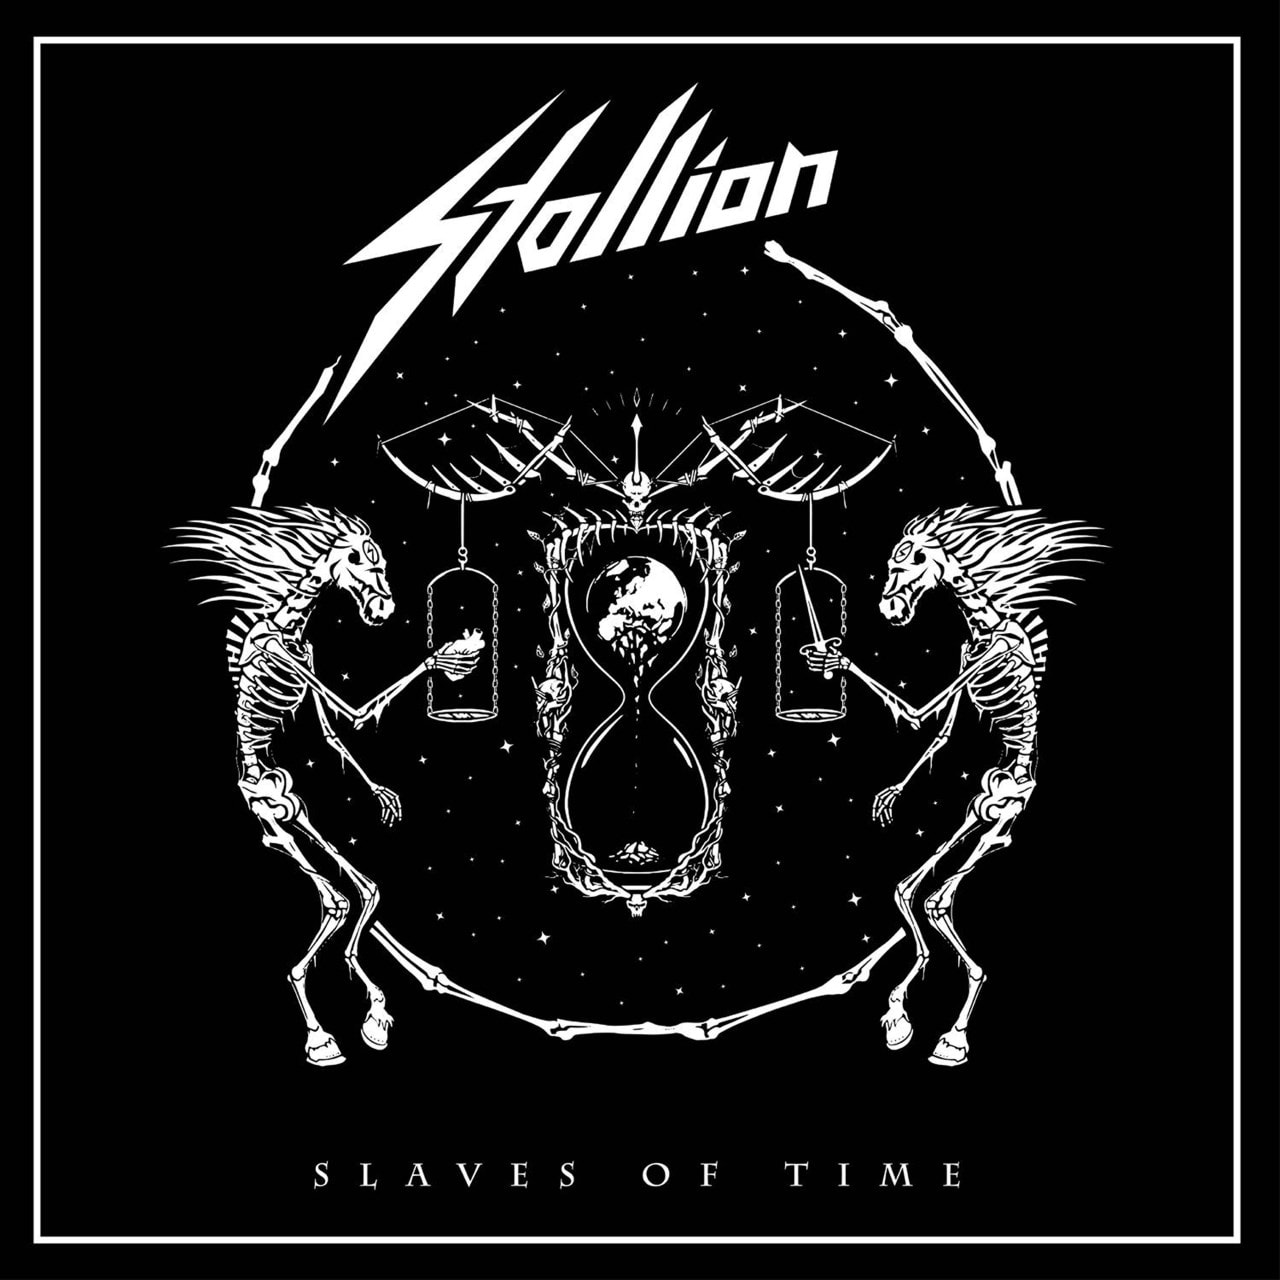 Slaves of Time - 1